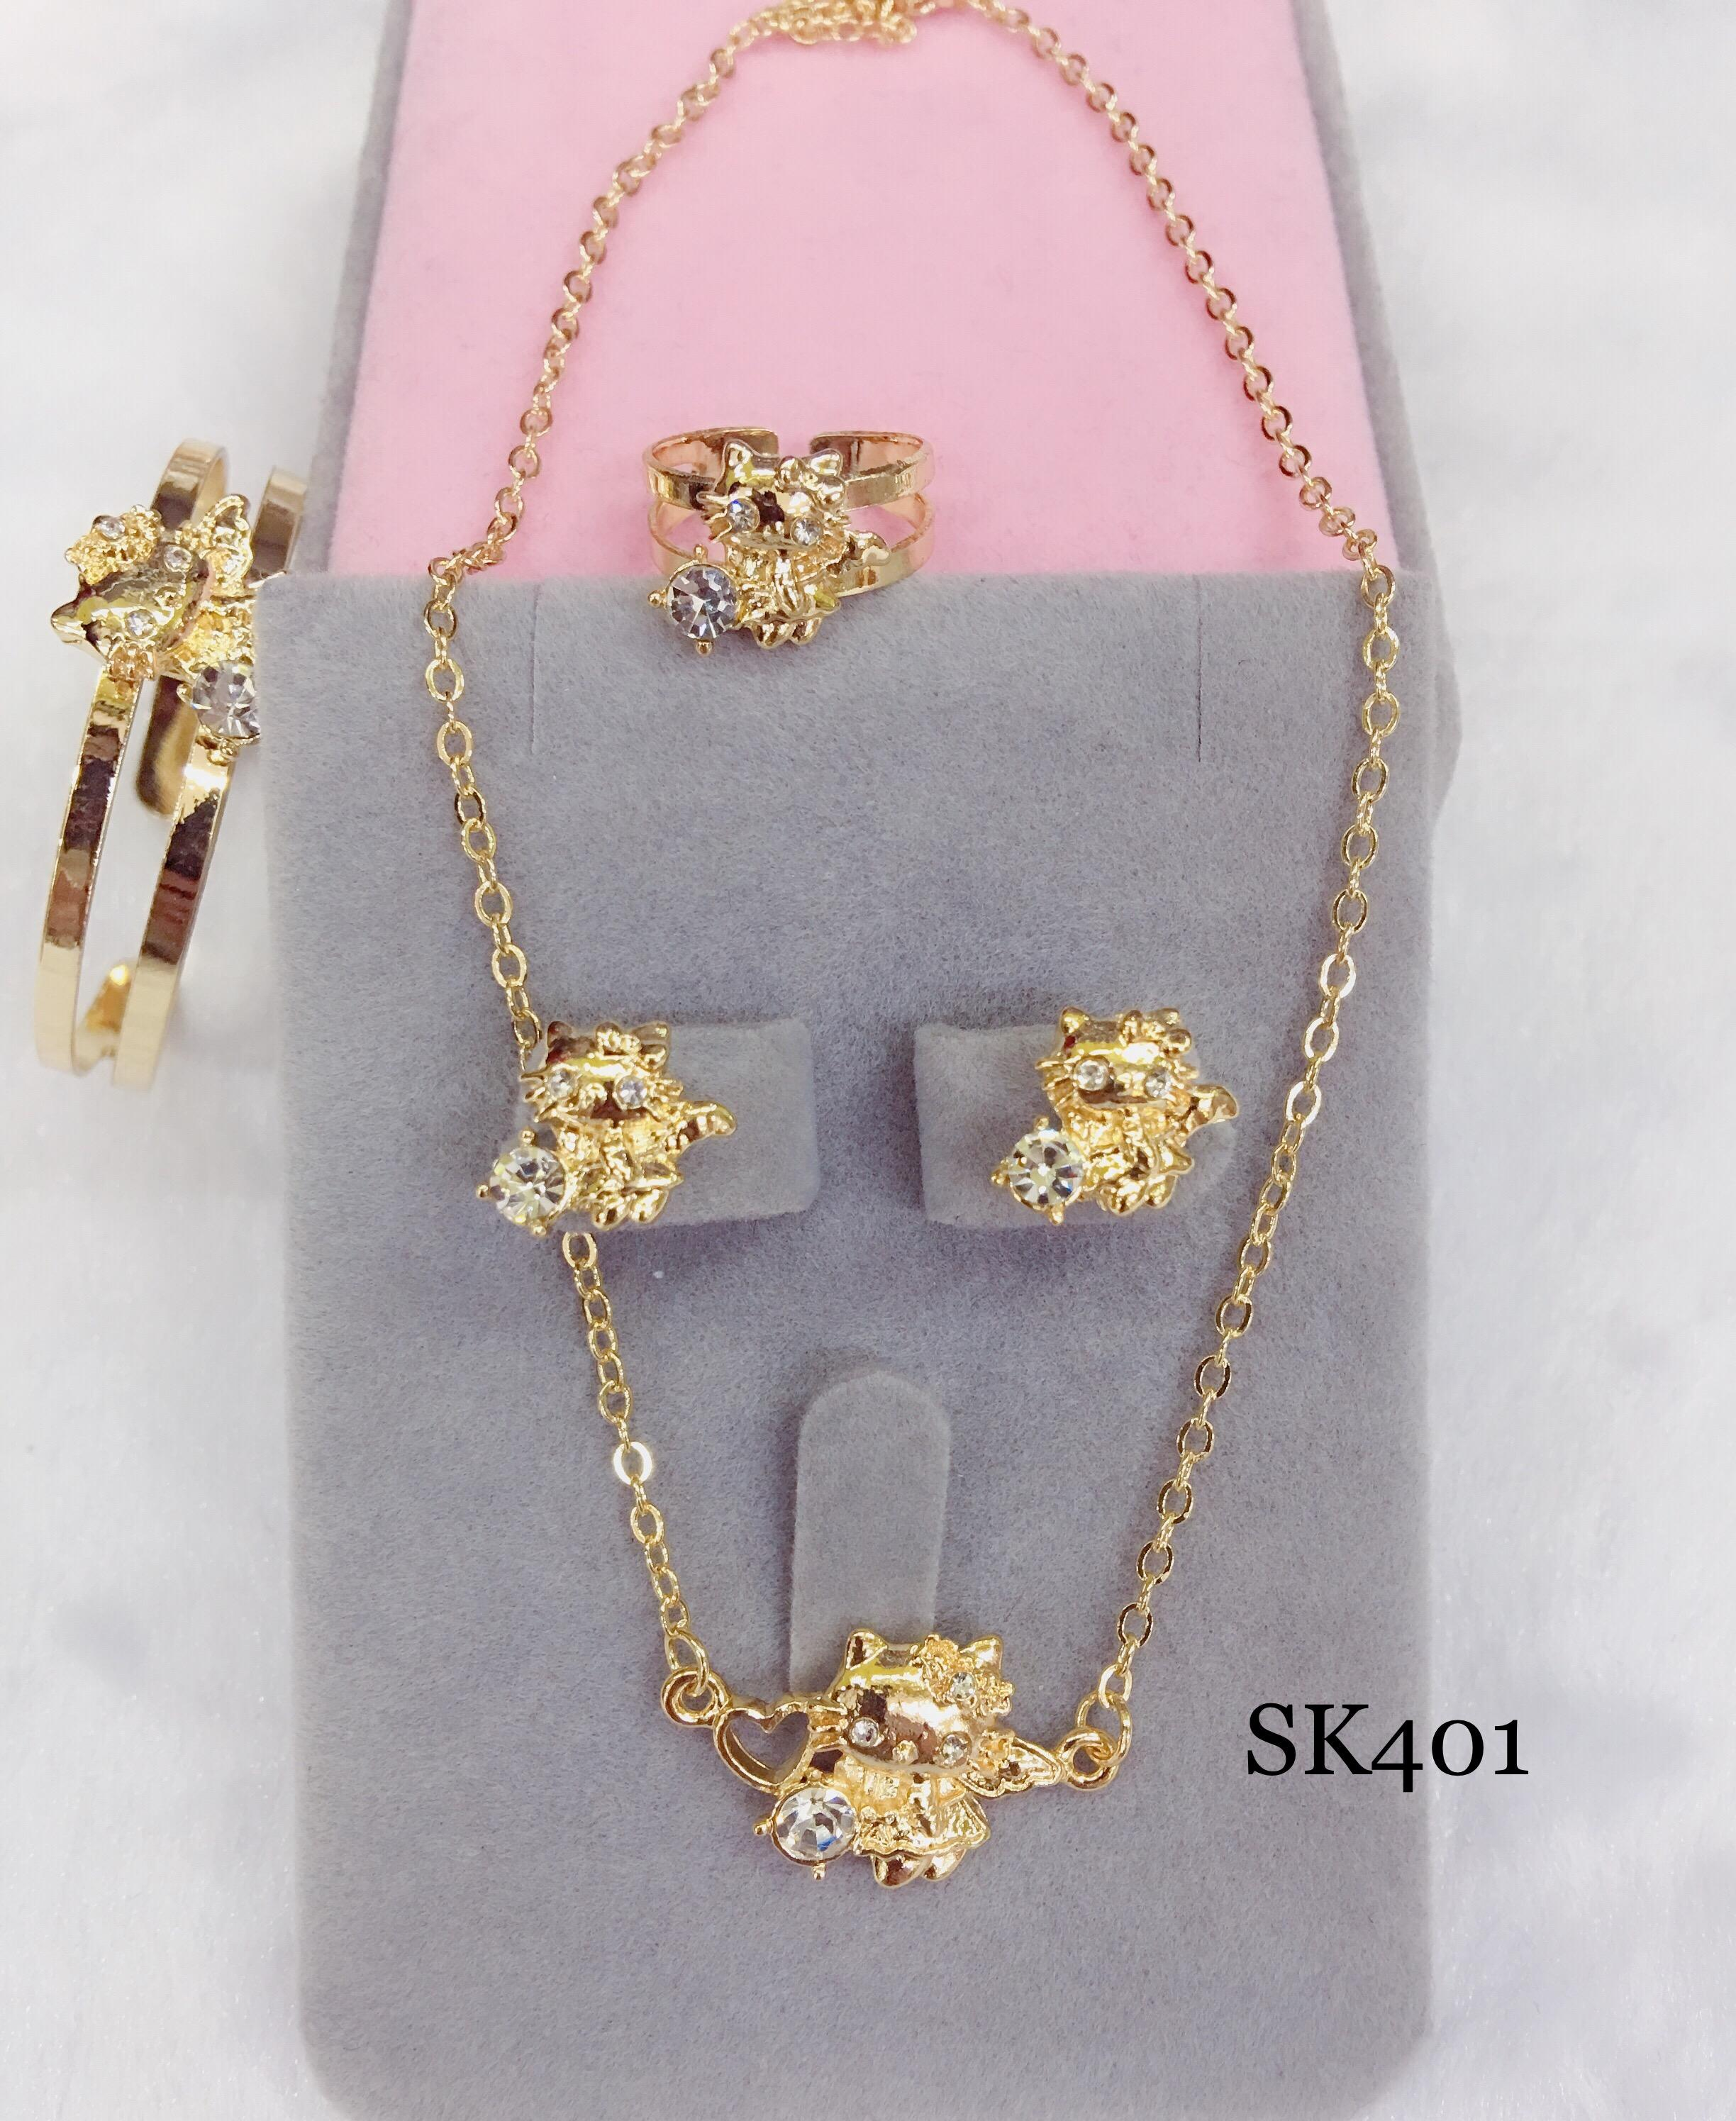 Sk401 18k Rose Gold 4 In 1 Set For Kids By Miss M Shop.